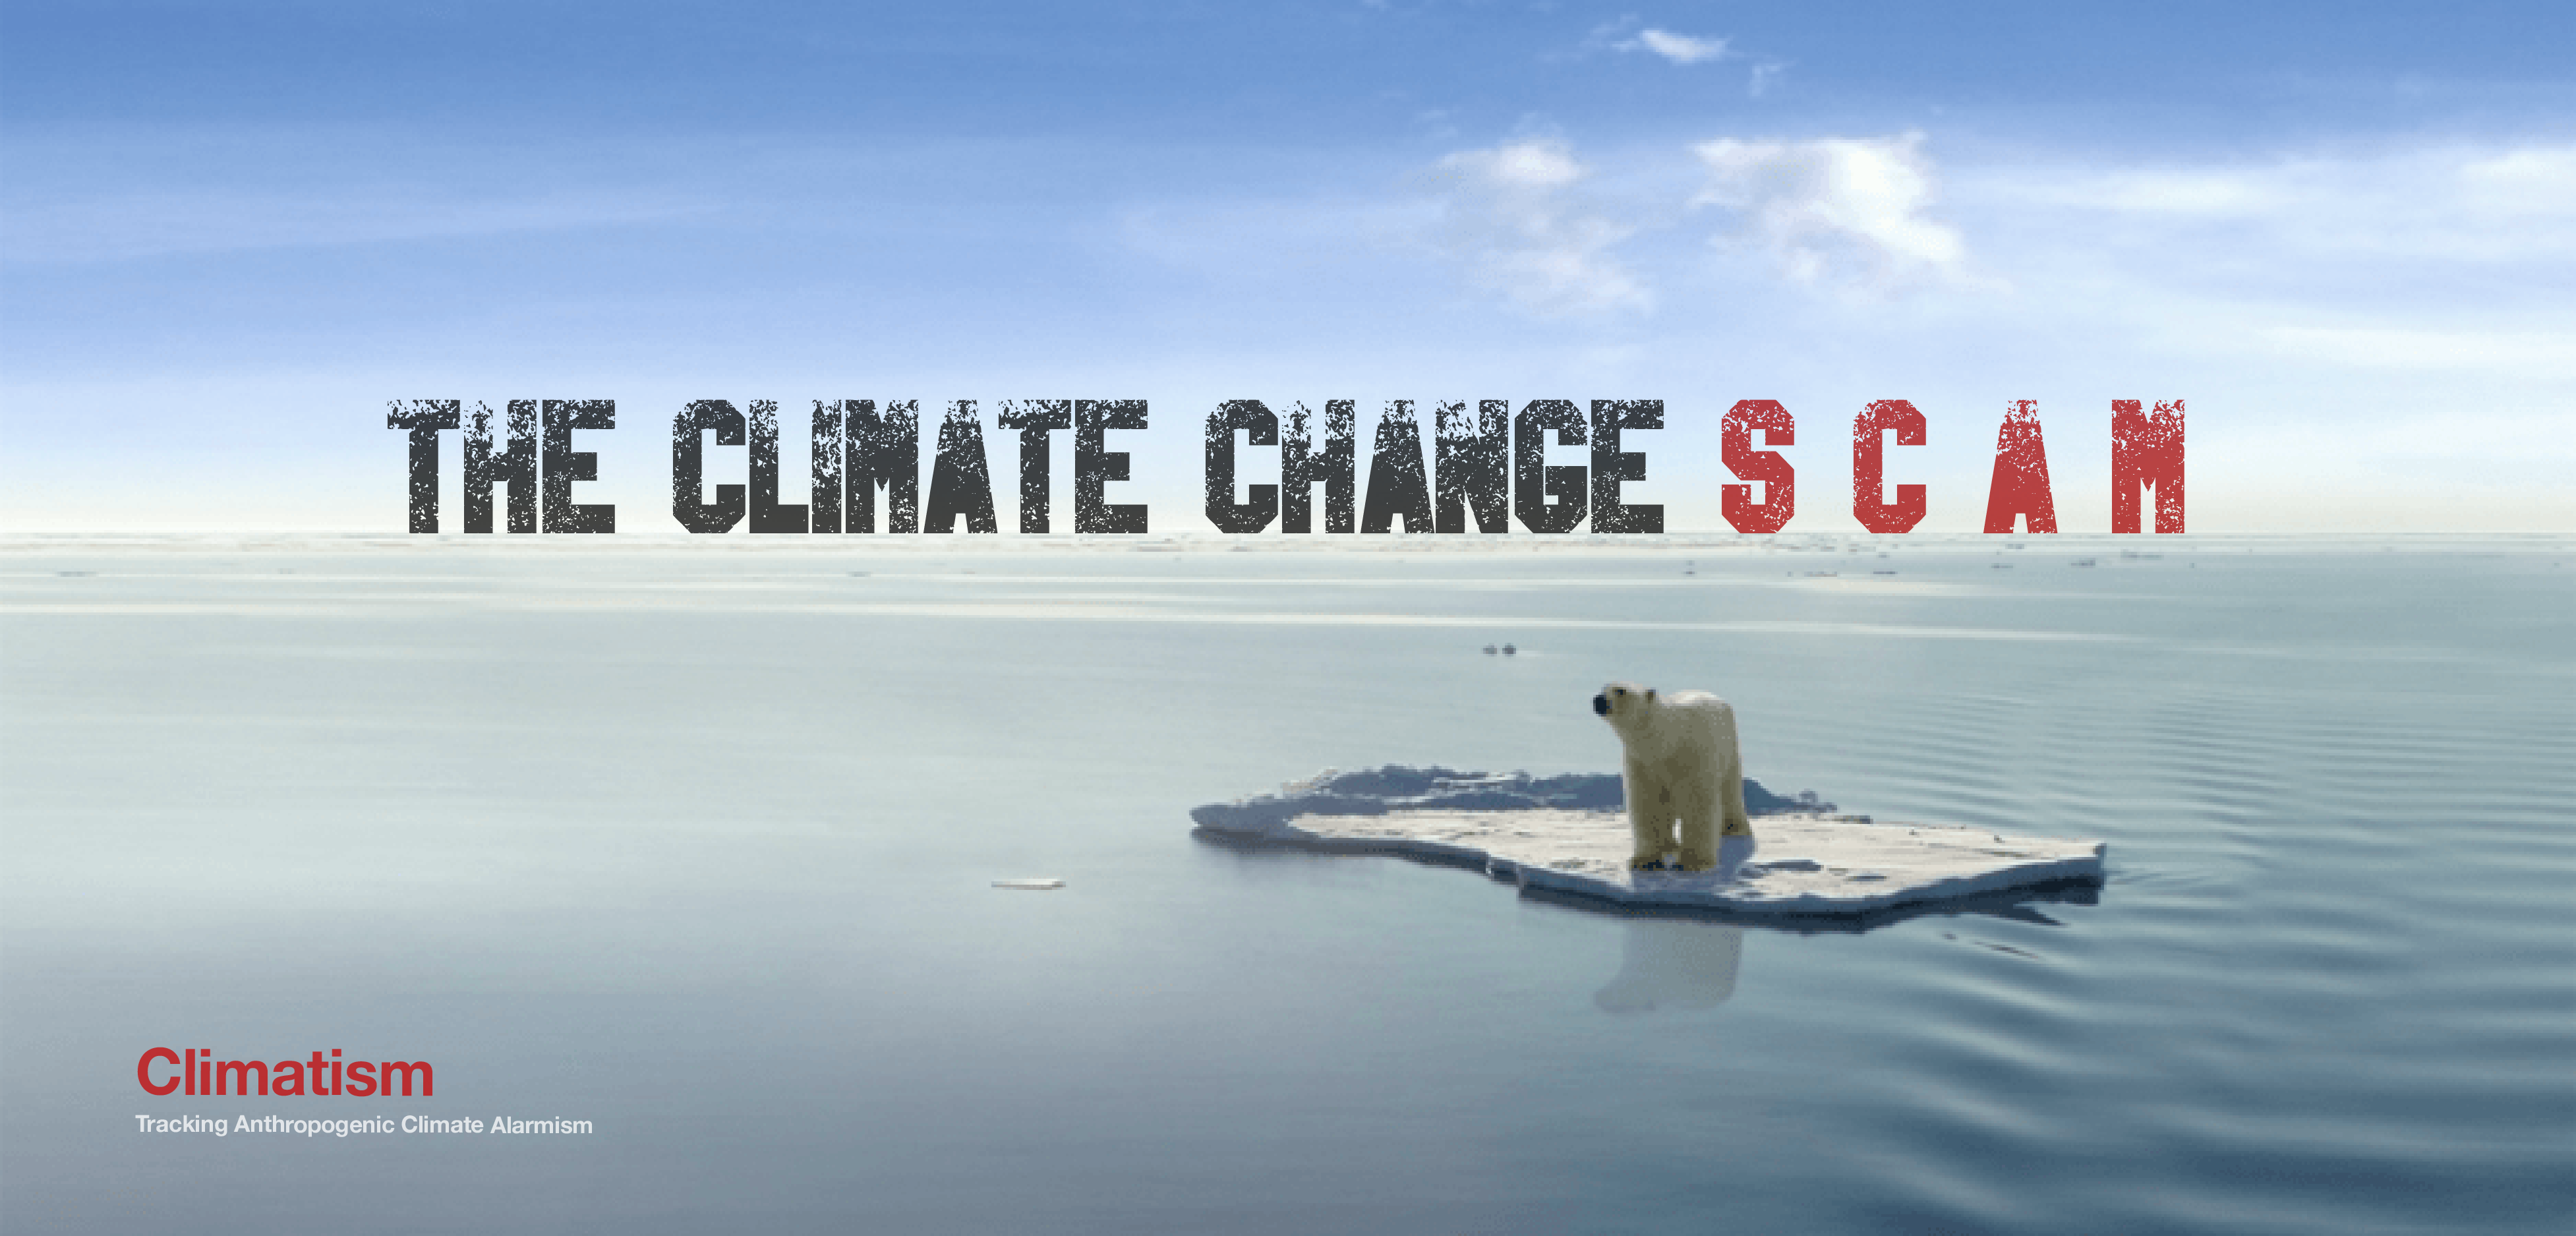 the climate change scam - climatism